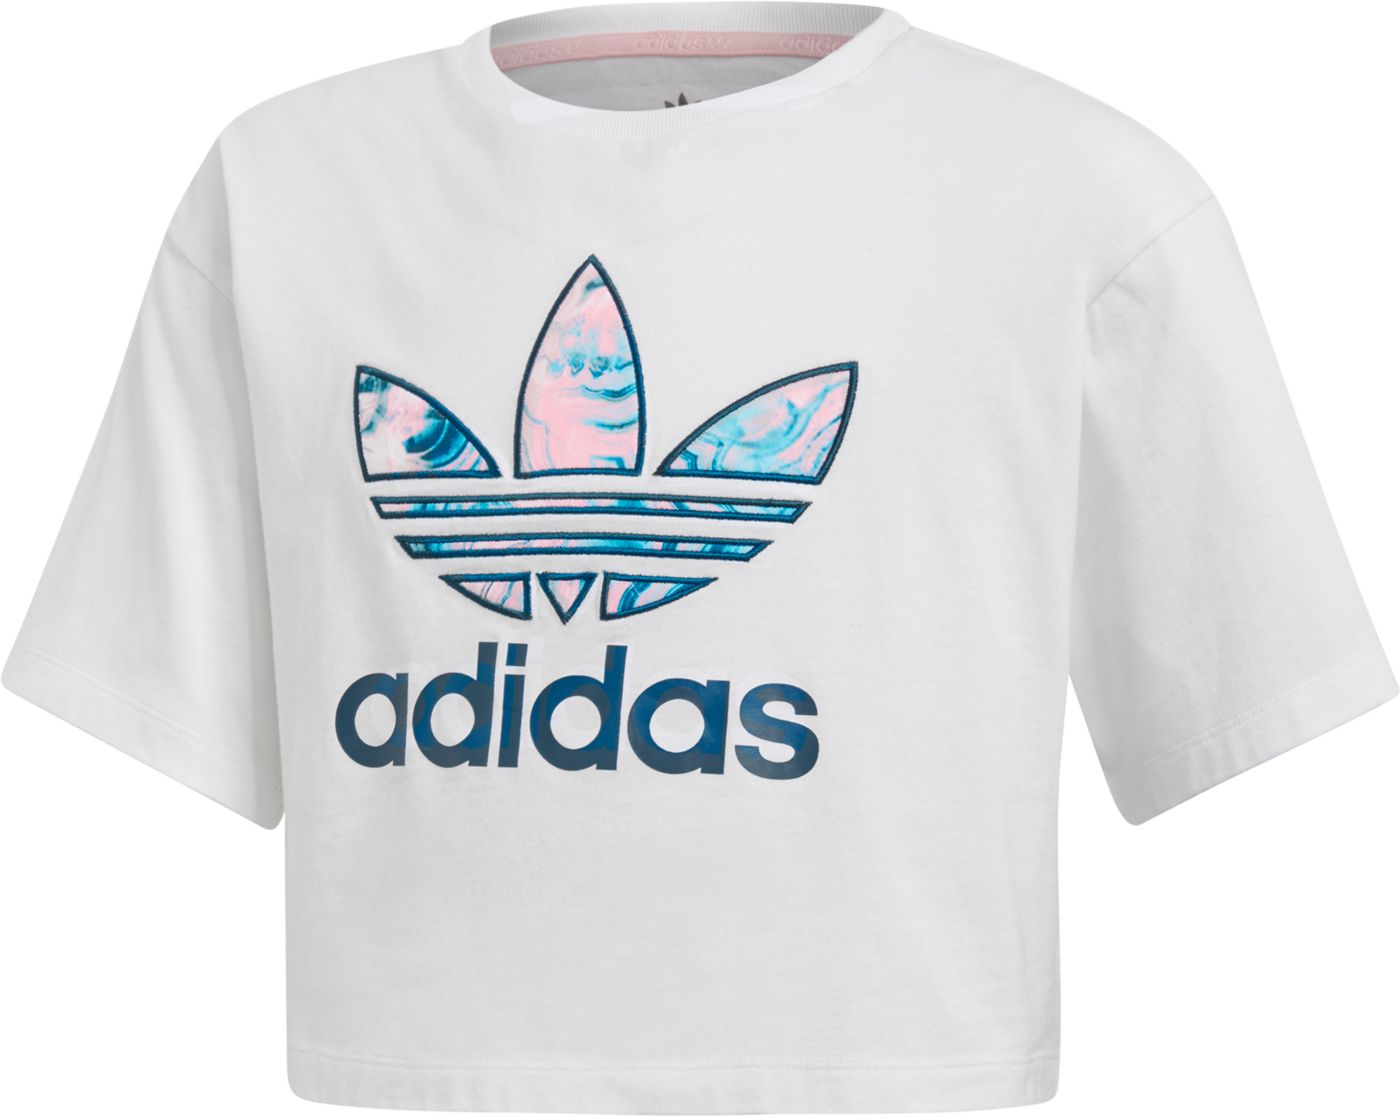 adidas Originals Girls' Marble Trefoil Cropped T-Shirt